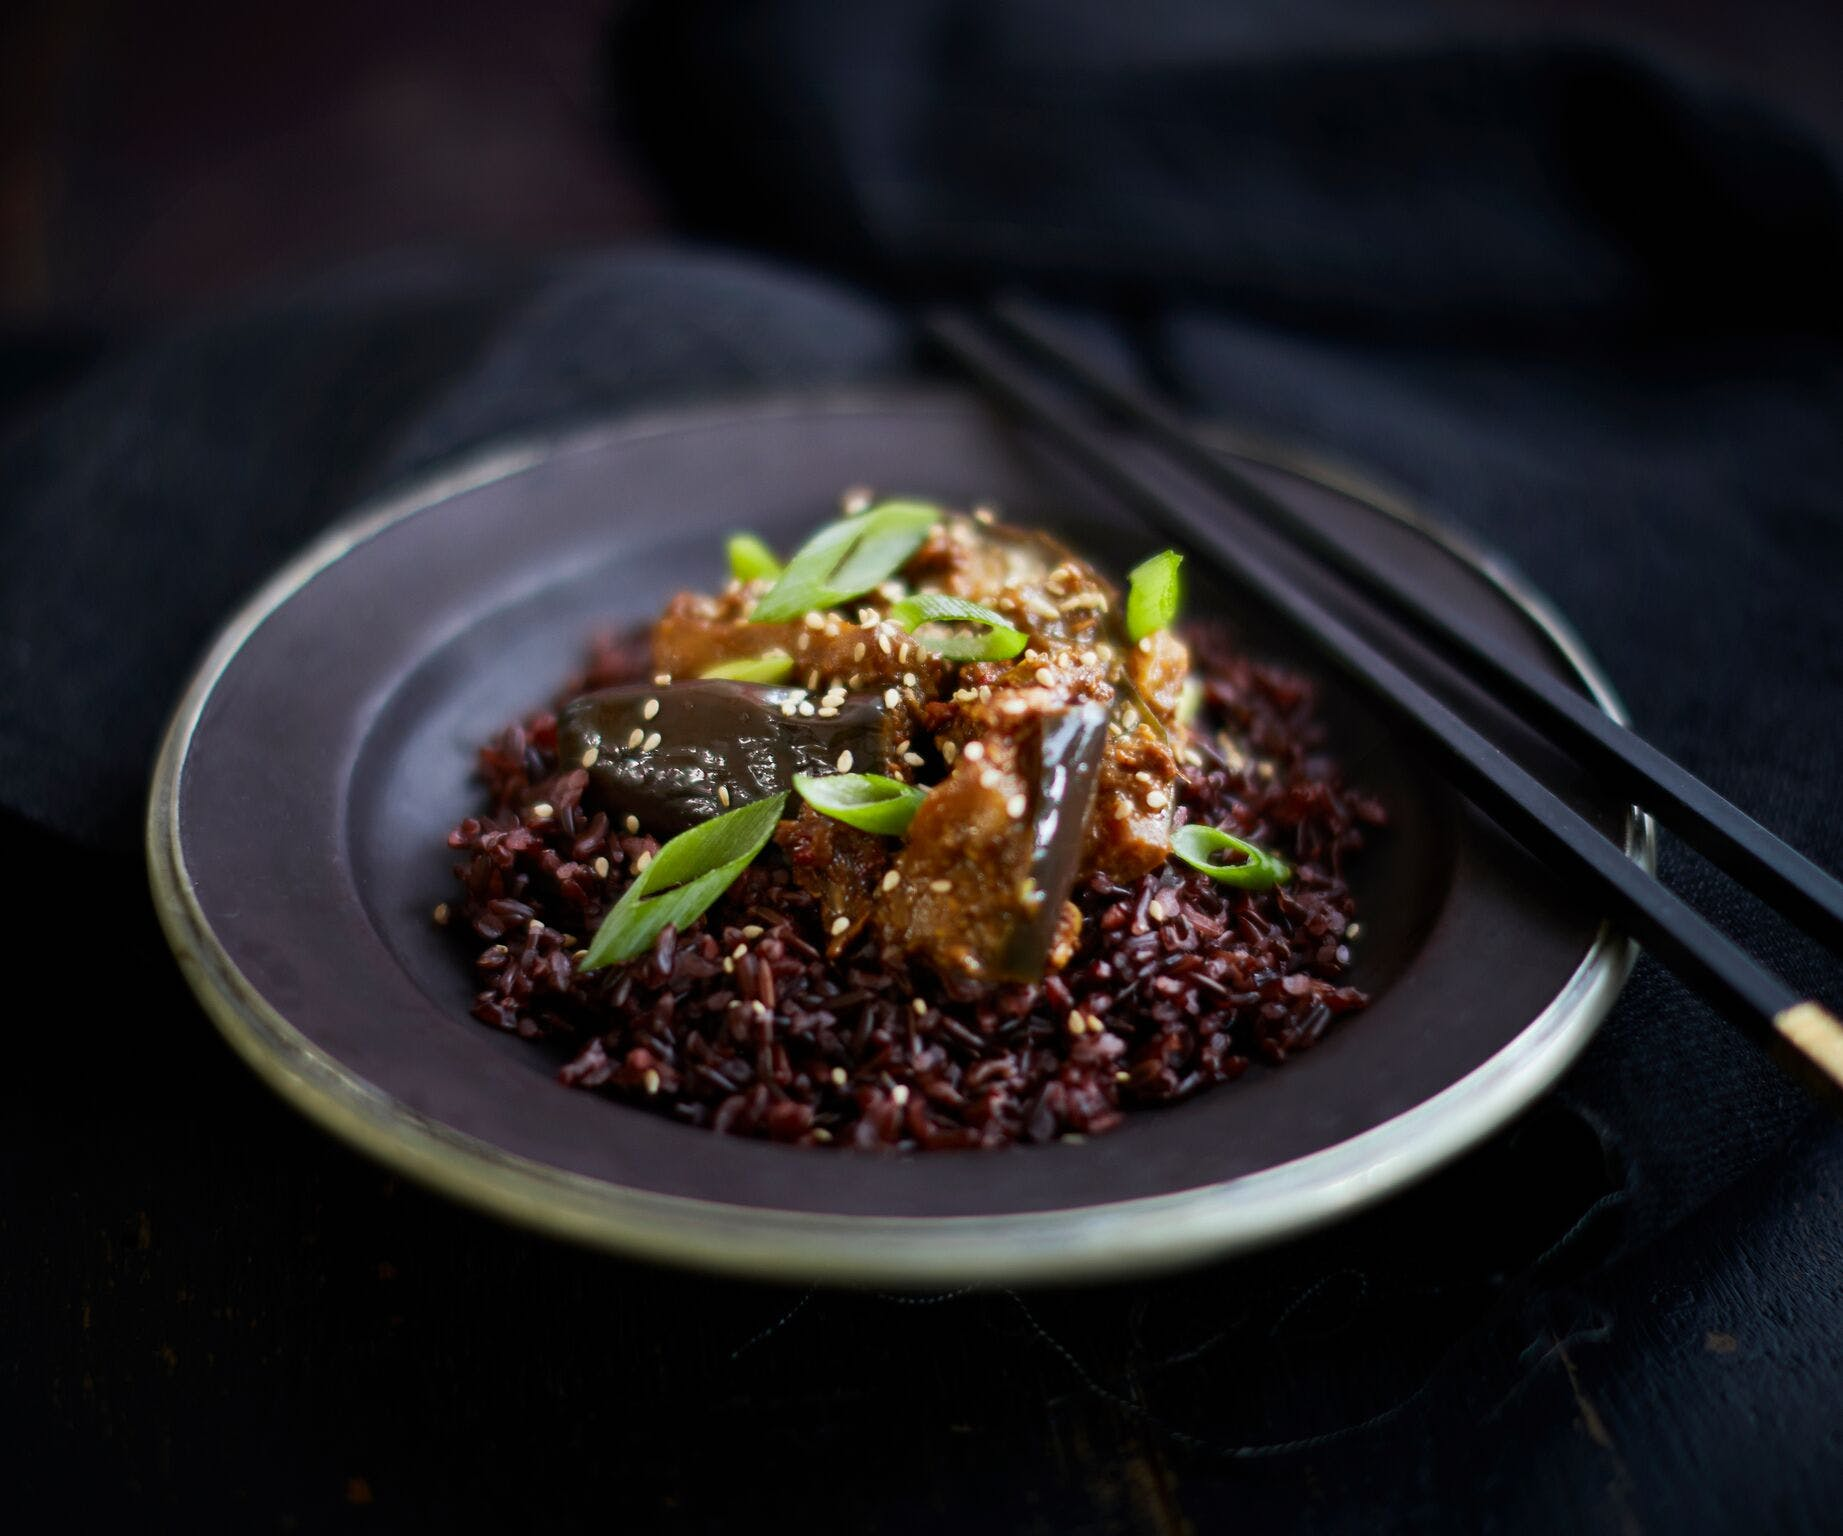 Miso Aubergine with Red Rice